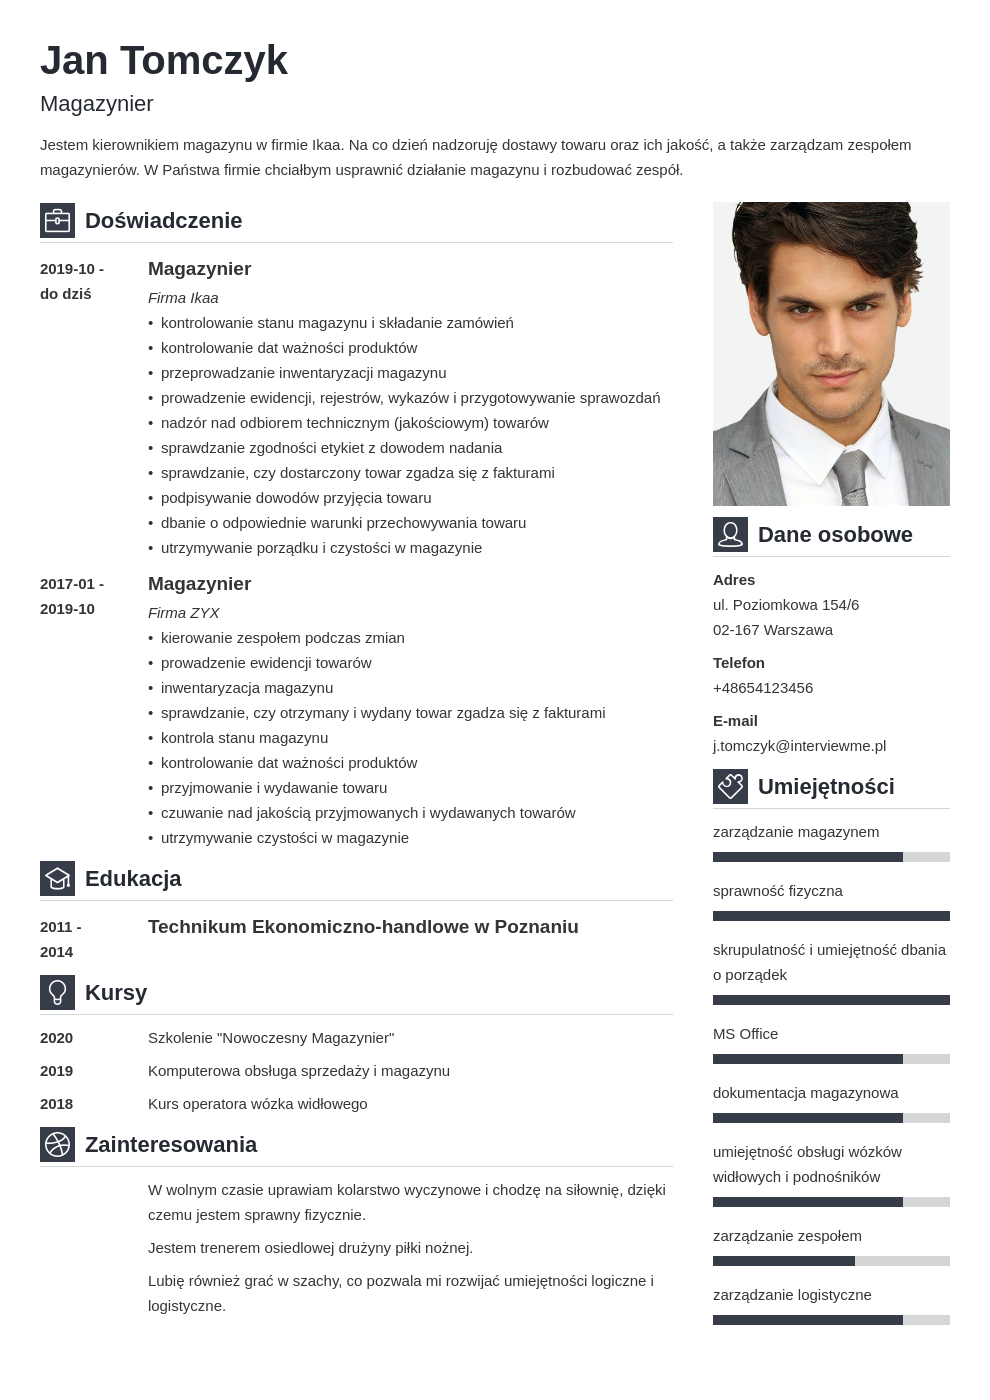 curriculum vitae 8 zbednych elementow template vibes